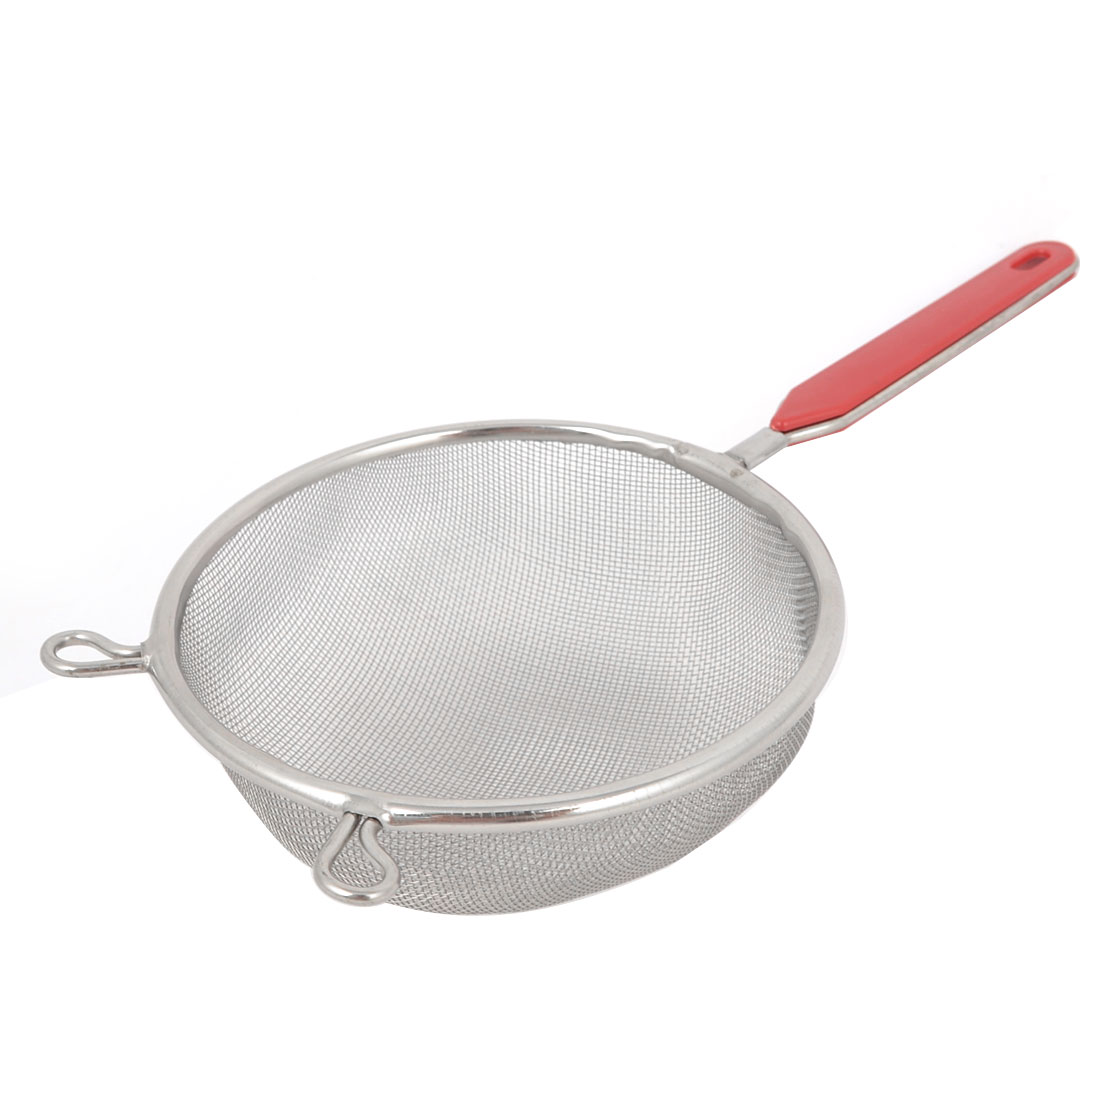 Plastic Coated Grip Stainless Steel Silver Tone 10cm Dia Mesh Ladle Strainer